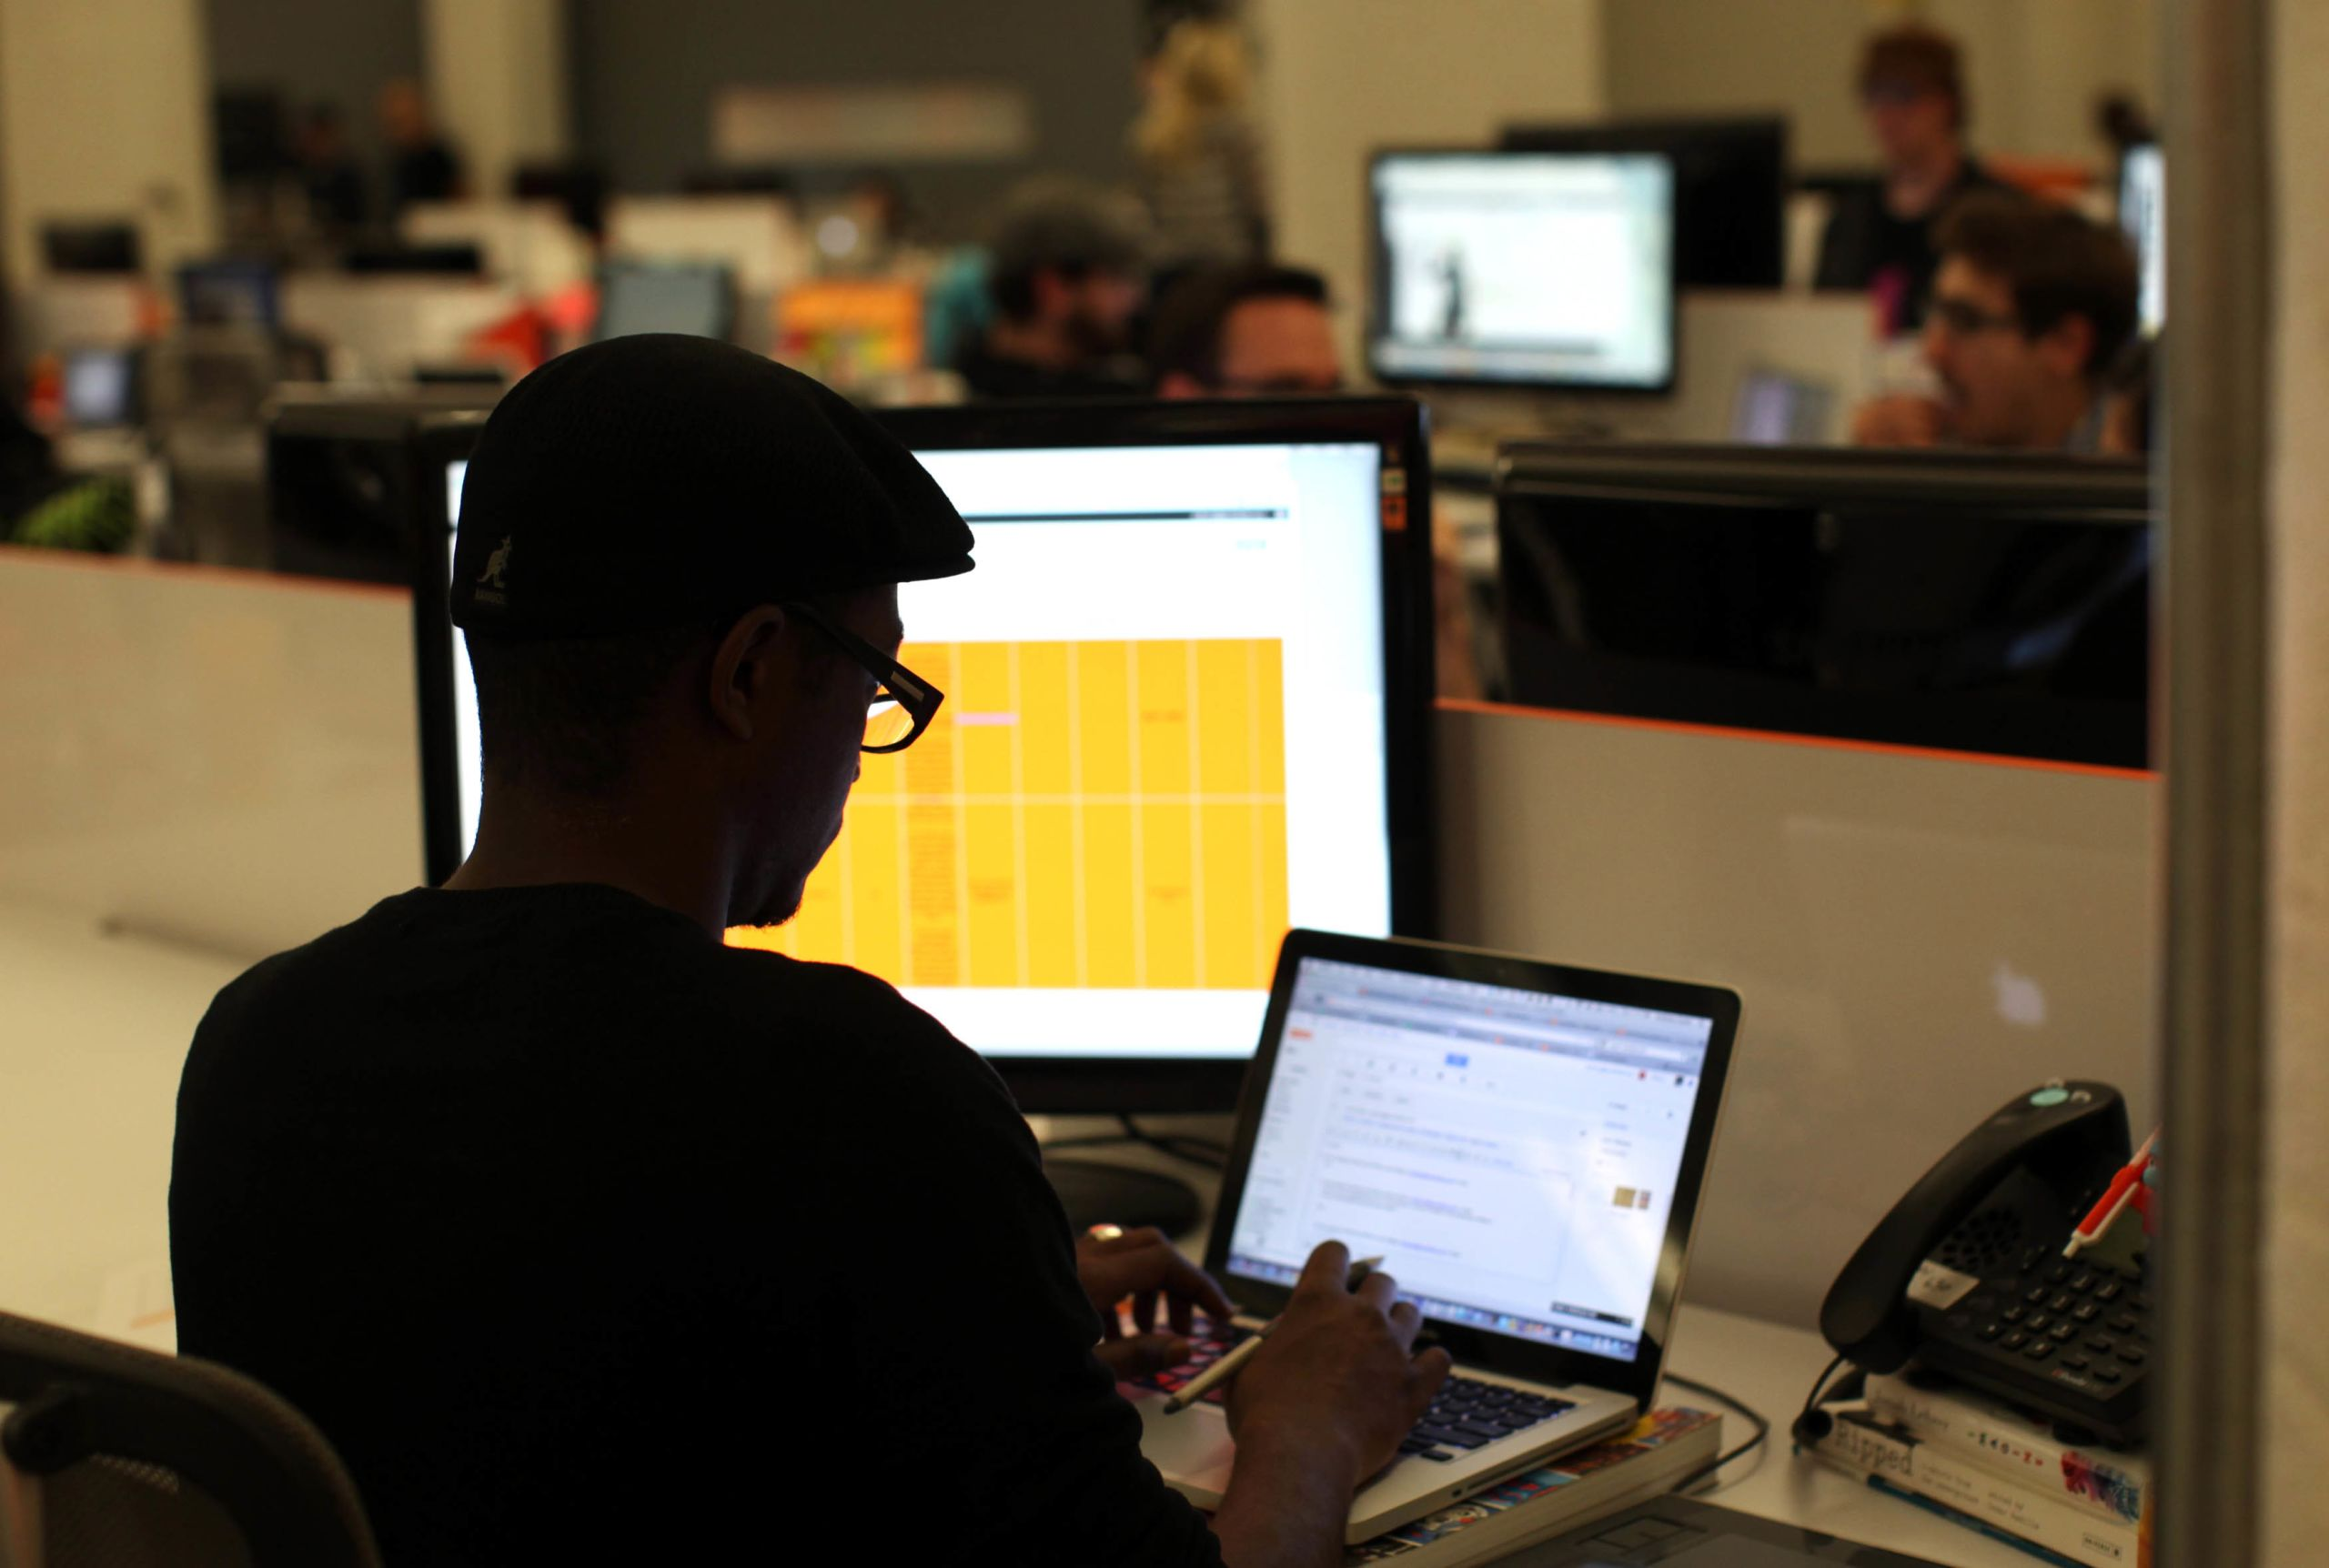 Designer Anthony Grant works on his computer at Eventbrite headquarters in the South of Market area in  San Francisco, California May 25, 2012. REUTERS/Robert Galbraith